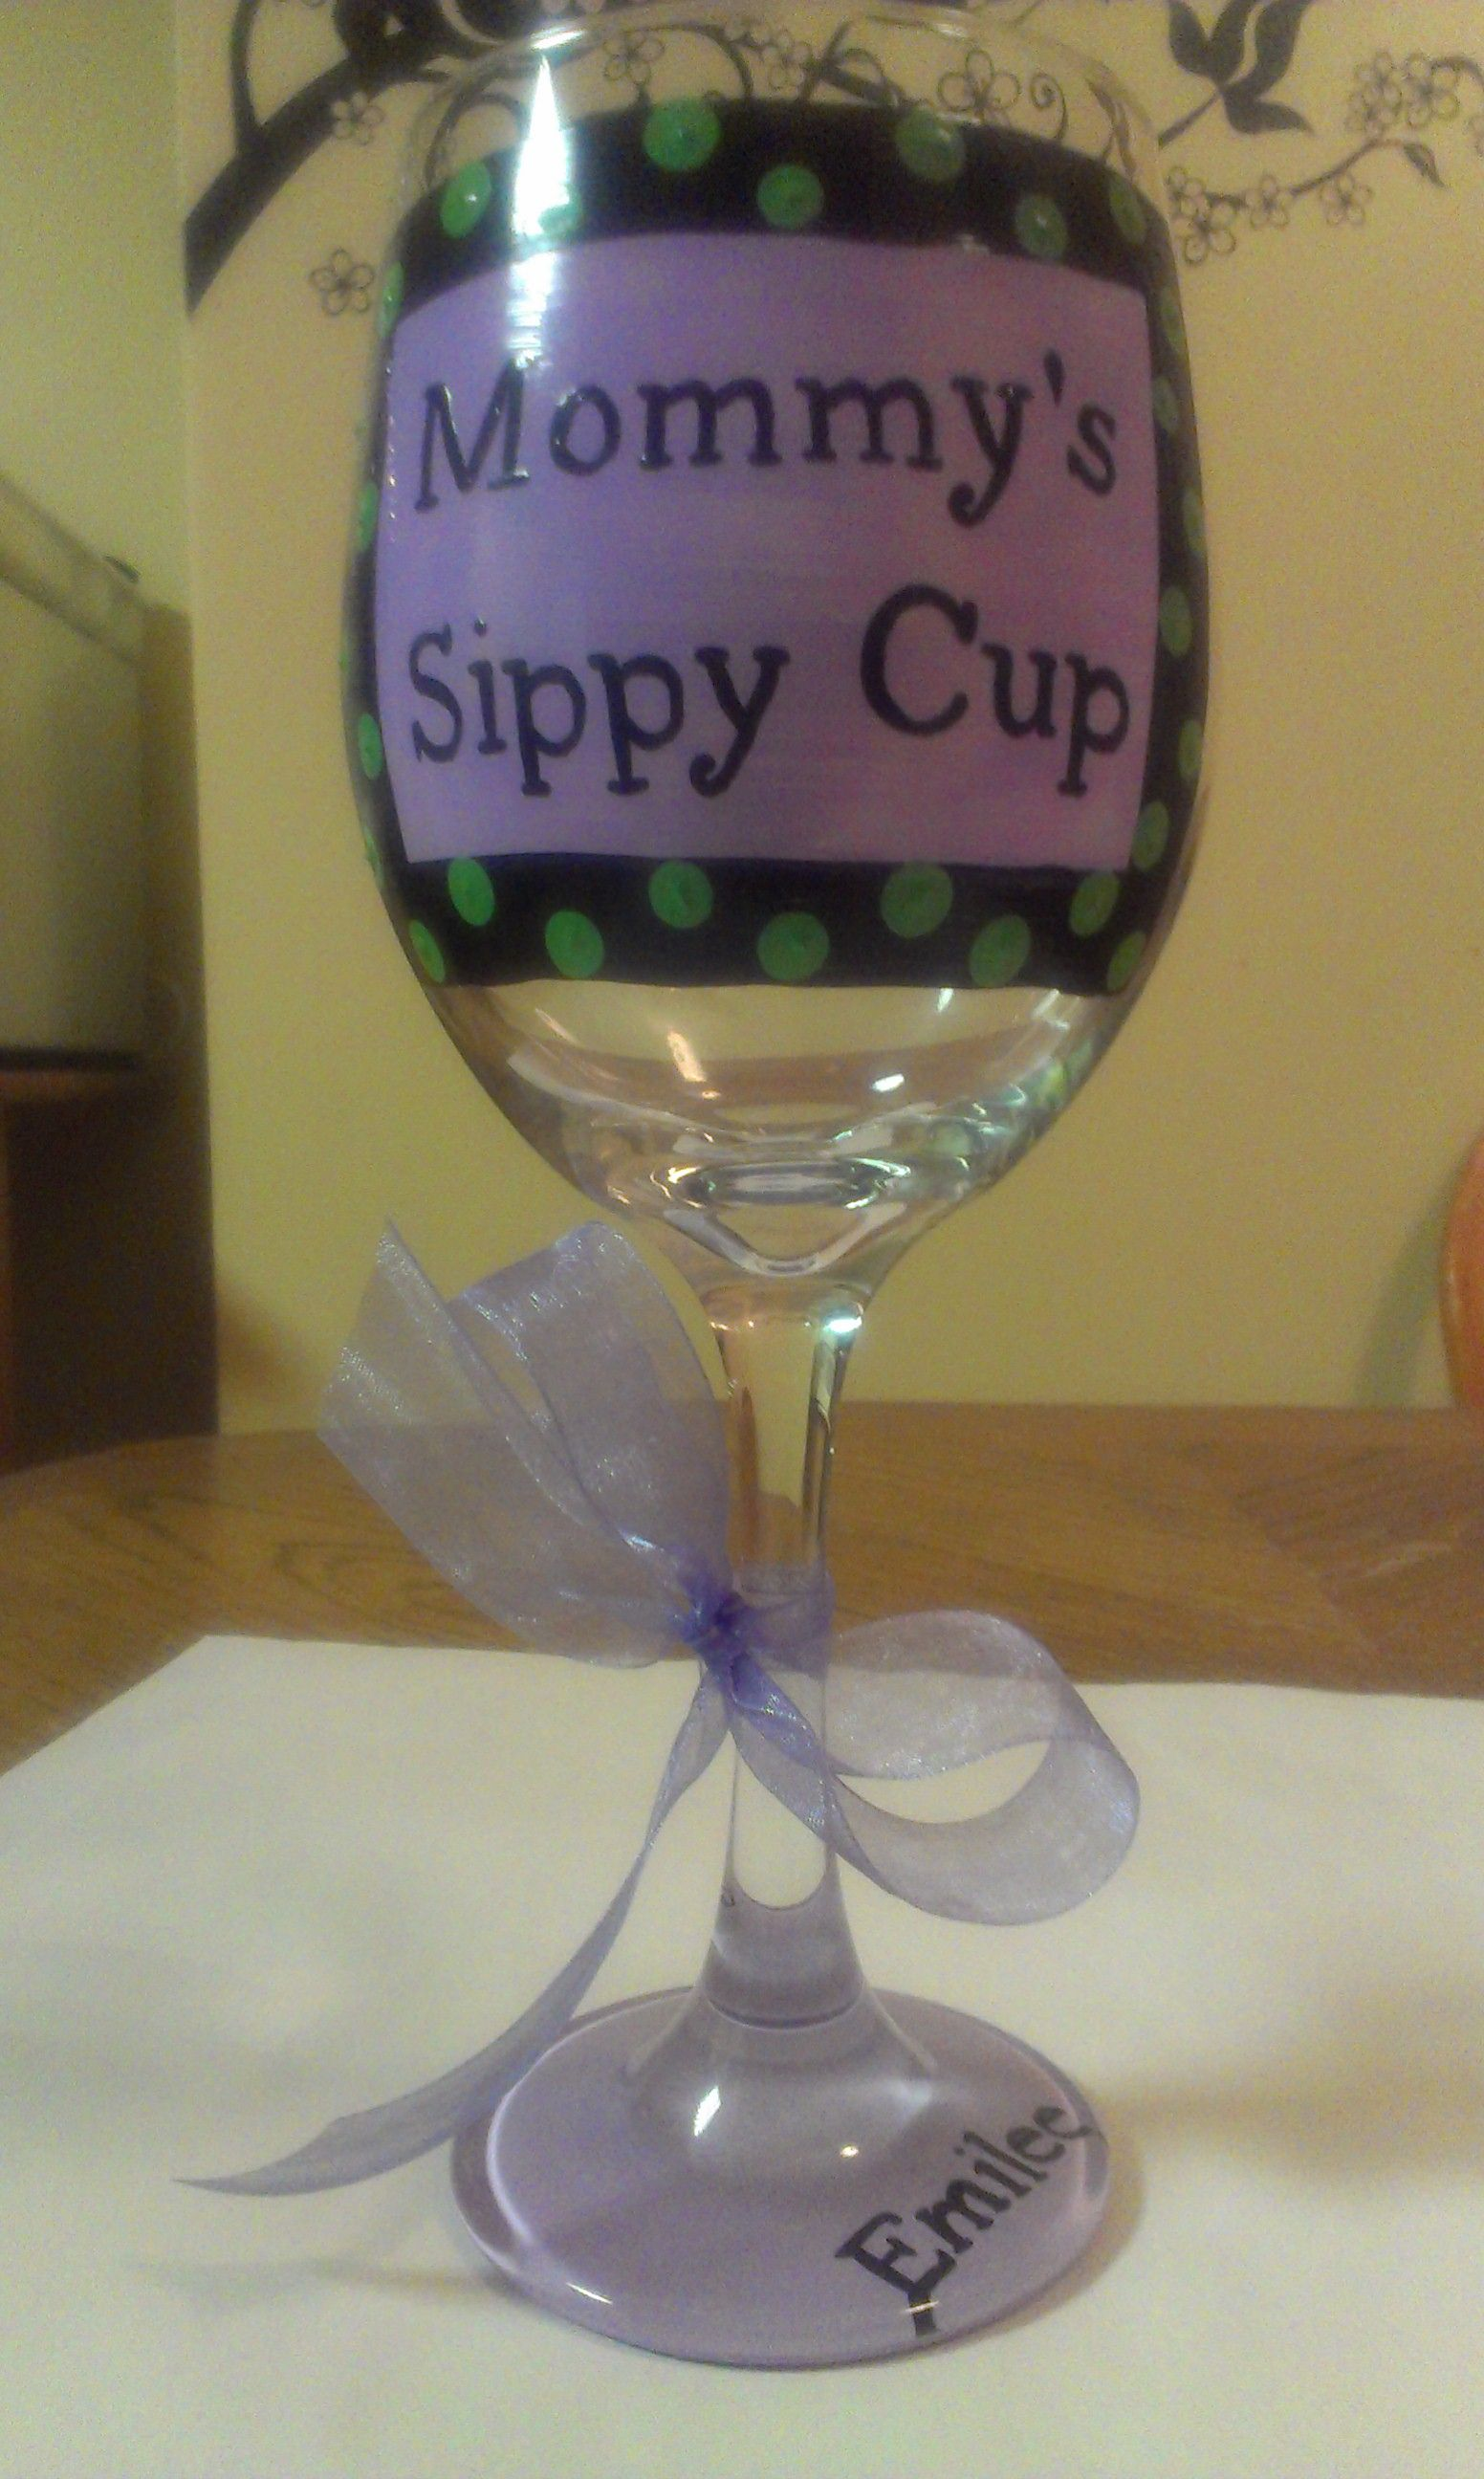 Mommy's Sippy Cup!Get yours at www.facebook.com/fancyglass